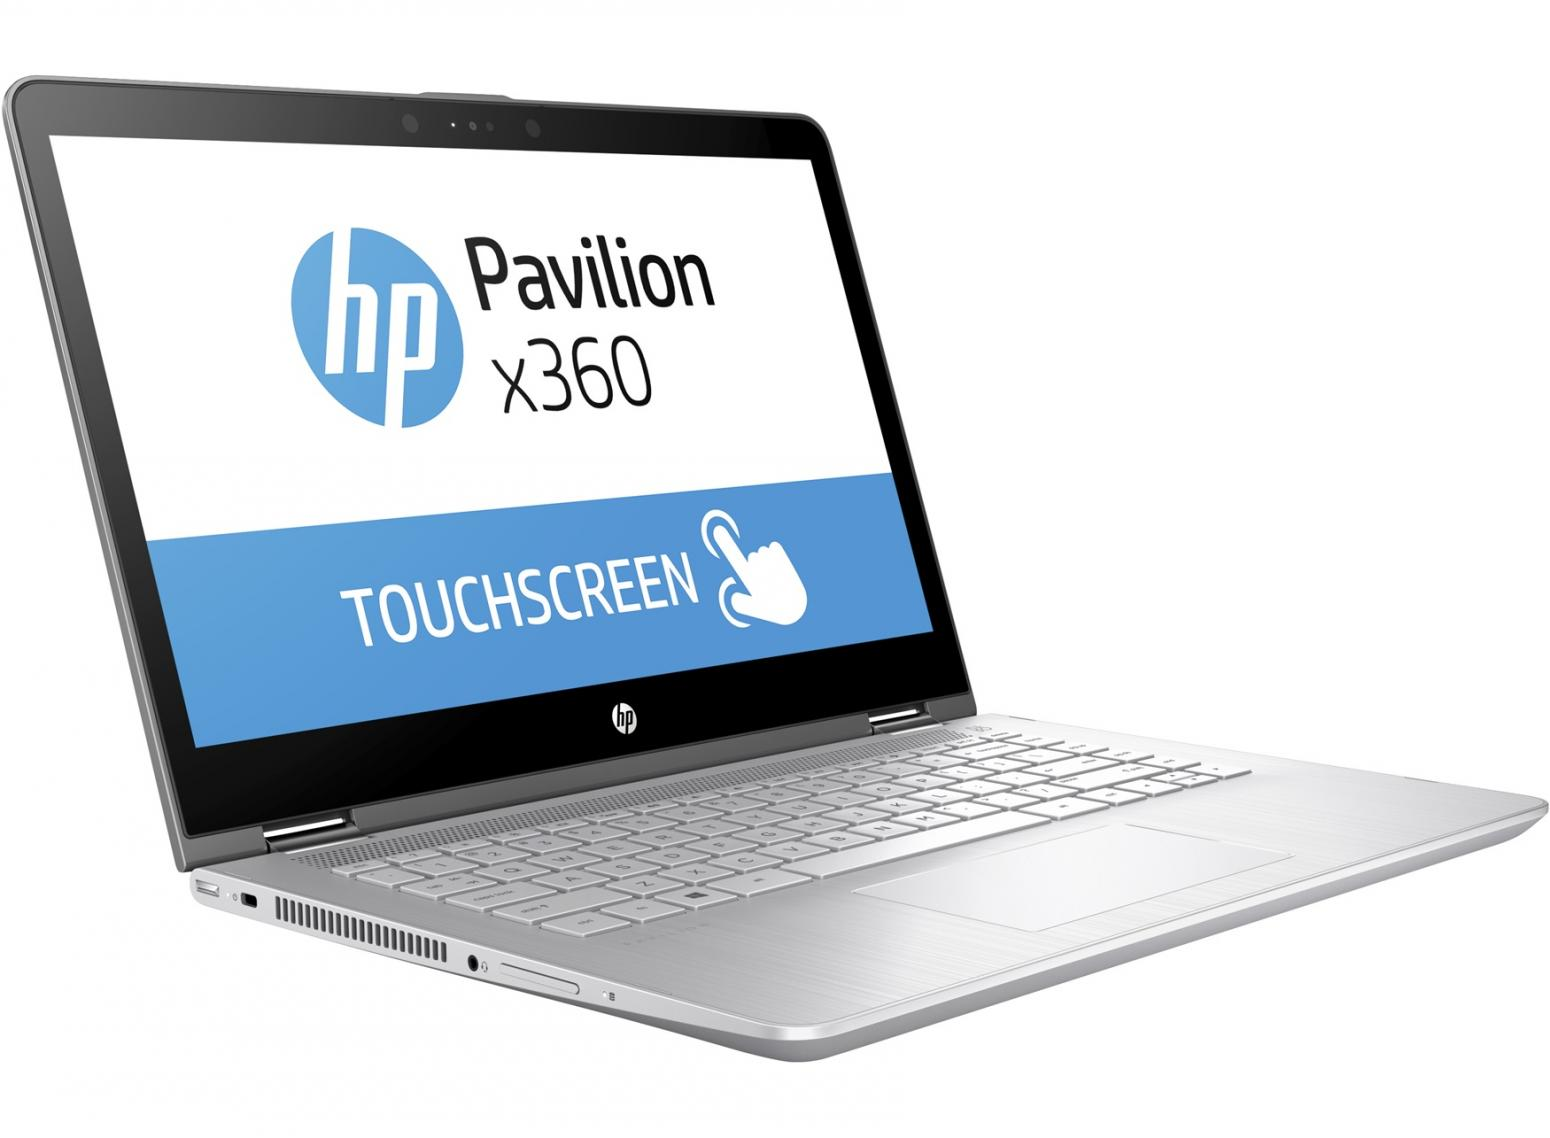 Ordinateur portable HP Pavilion x360 14-ba034nf SSD Argent Tactile IPS - photo 4